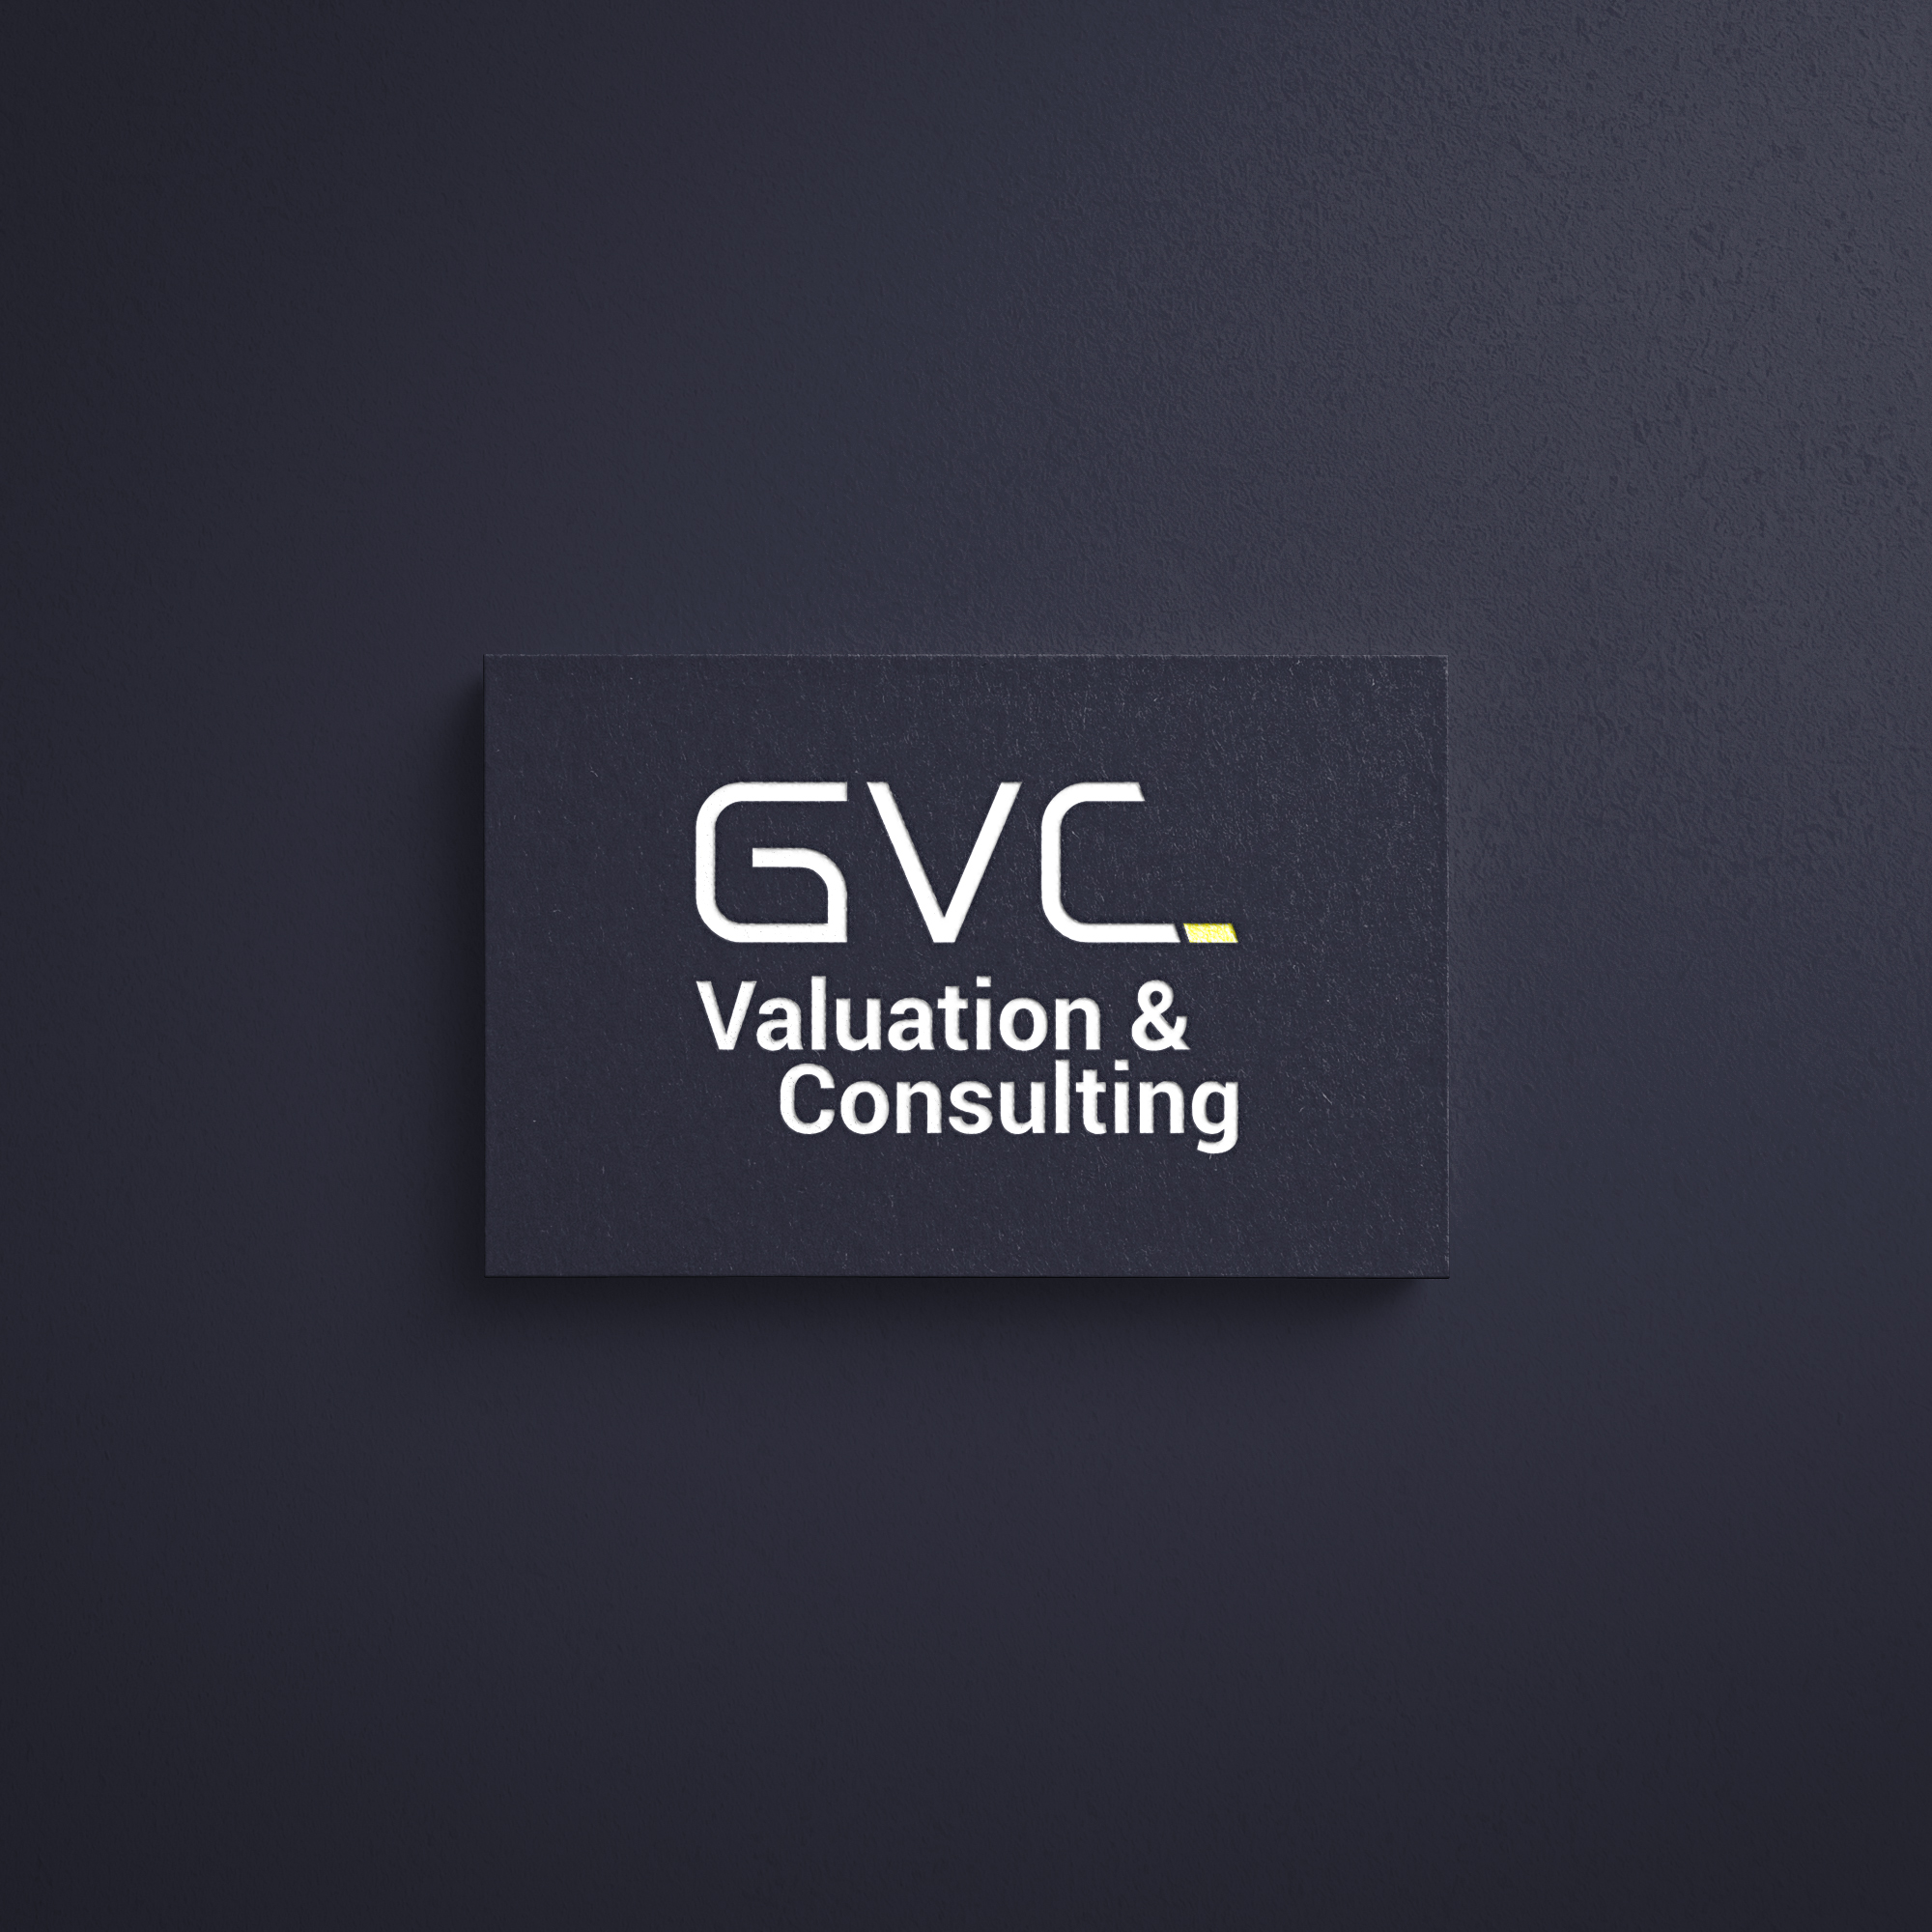 GVC rebranding and a new visual identity